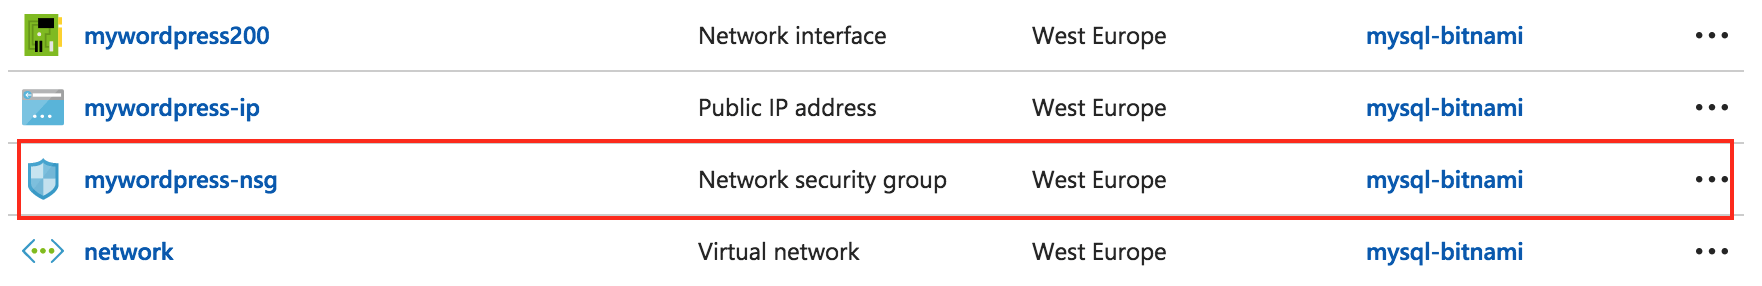 Delete database network security group